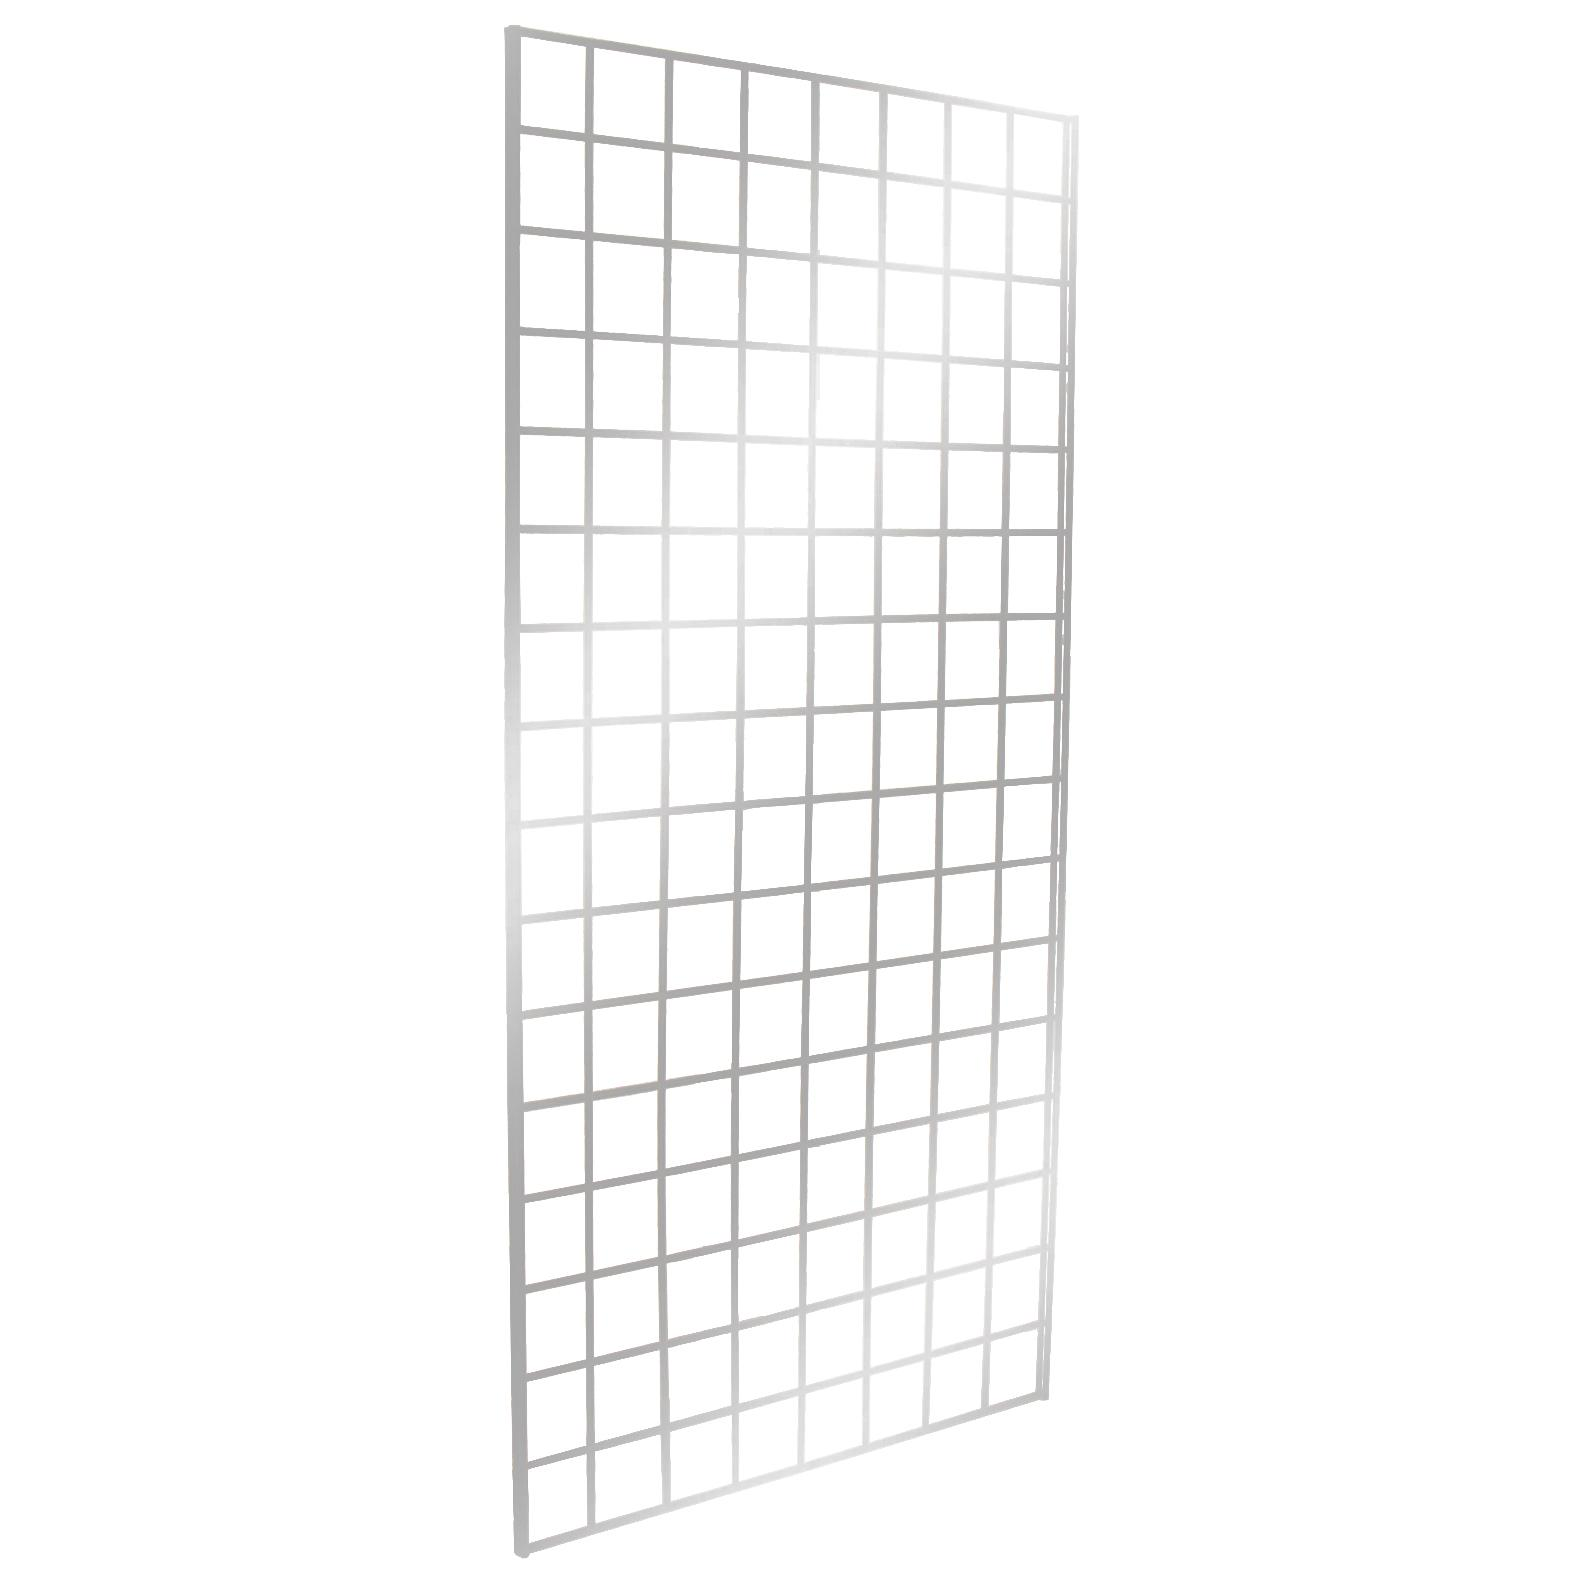 Gridwall Panel 2' x 8' Chrome - Upper Midwest Delivery Area